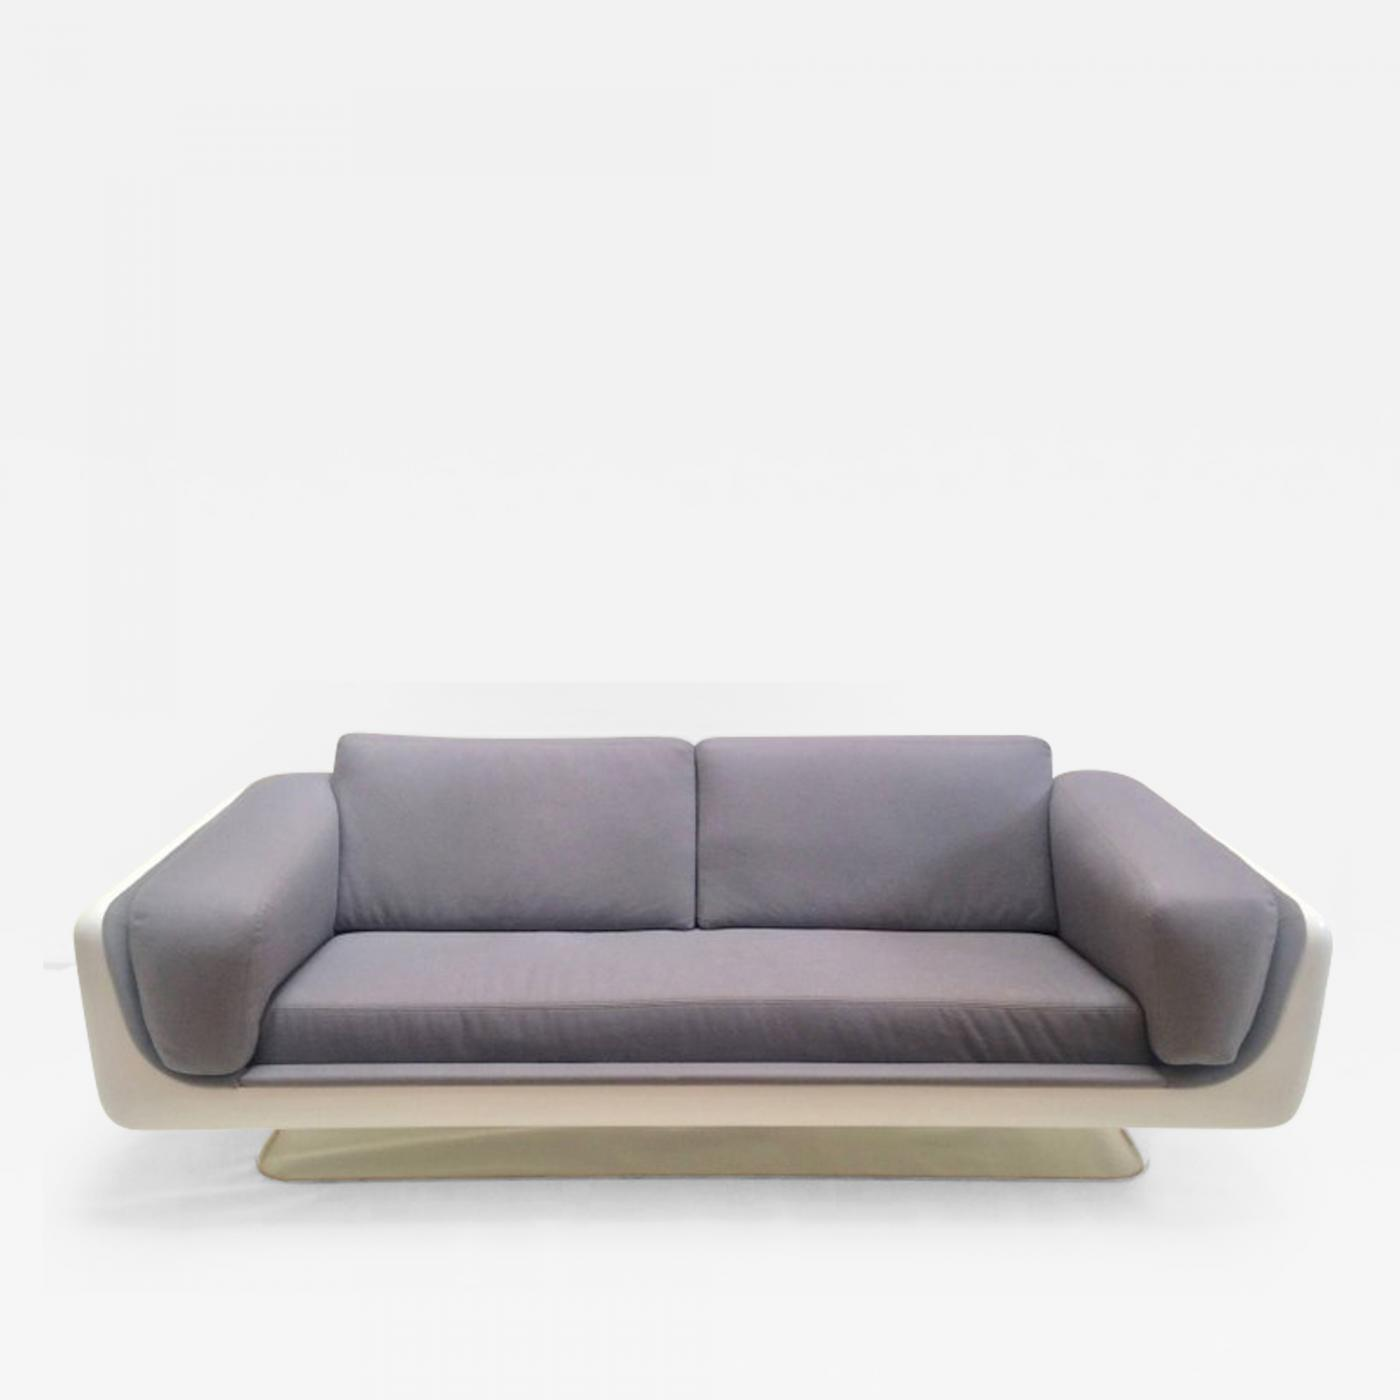 steelcase sofa bed sofas for less rohnert park review home co